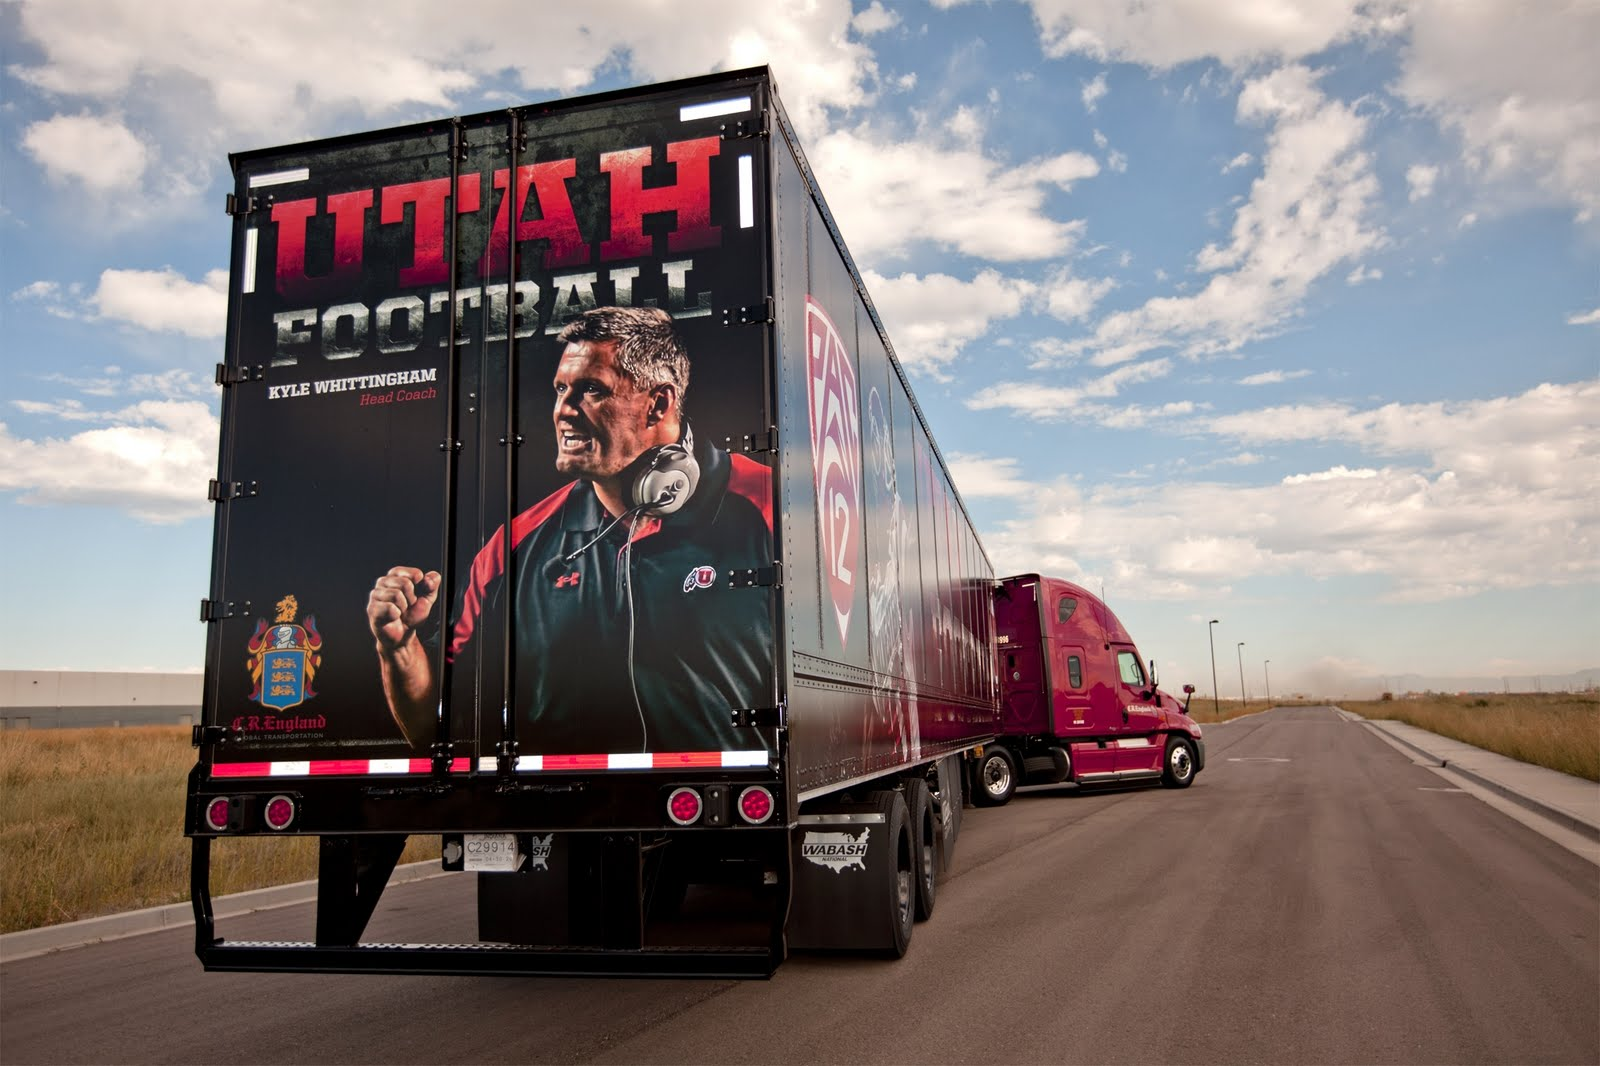 C r england is pleased to announce a new partnership with the university of utah football team for years football has been part of the american culture